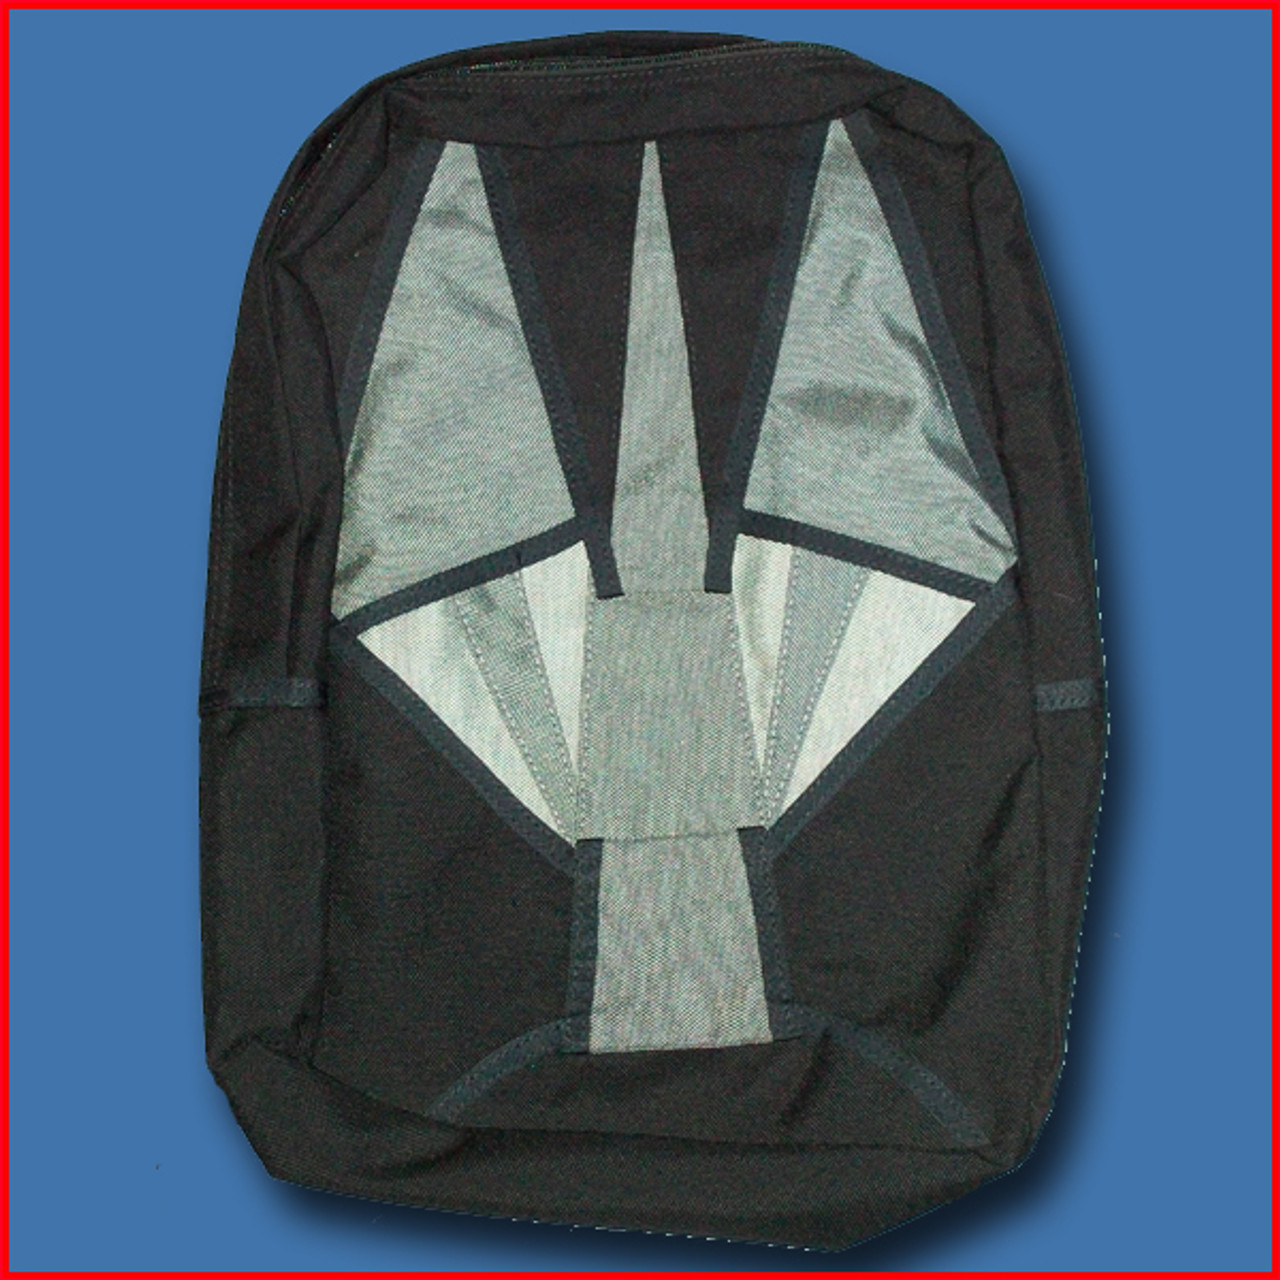 Mini Backpack in the shape of a Parachute (Black and Grey)